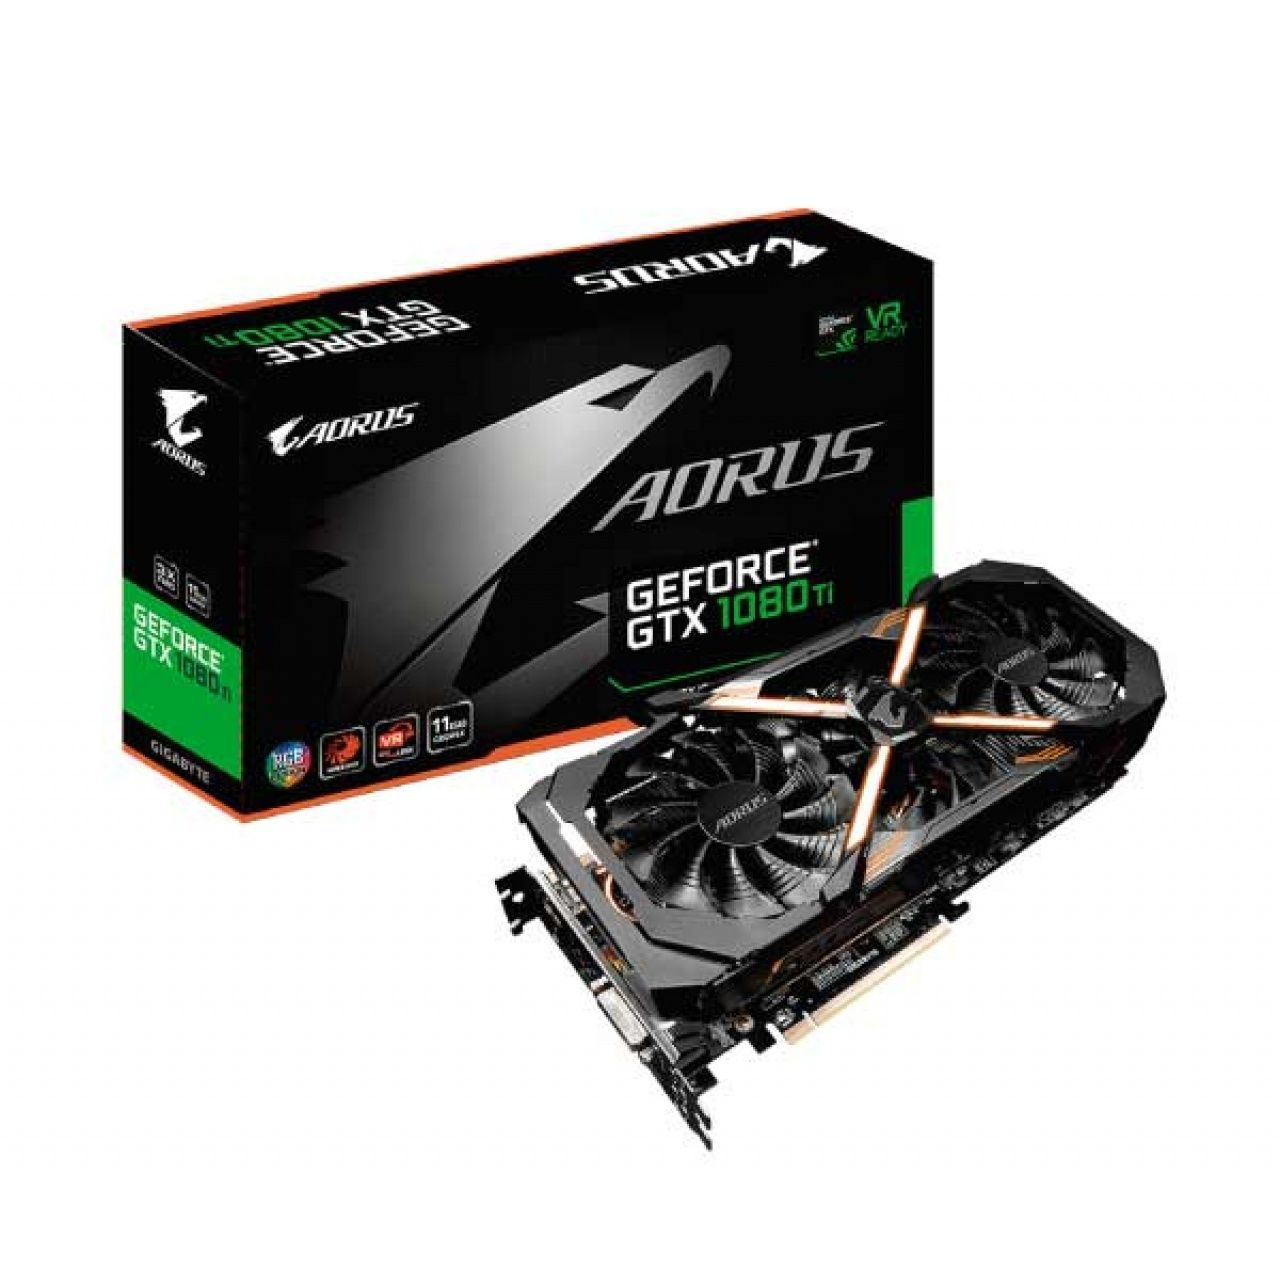 PLACA DE VÍDEO GIGABYTE GEFORCE GTX 1080 TI AORUS WINDFORCE 11GB GDDR5X 352BIT